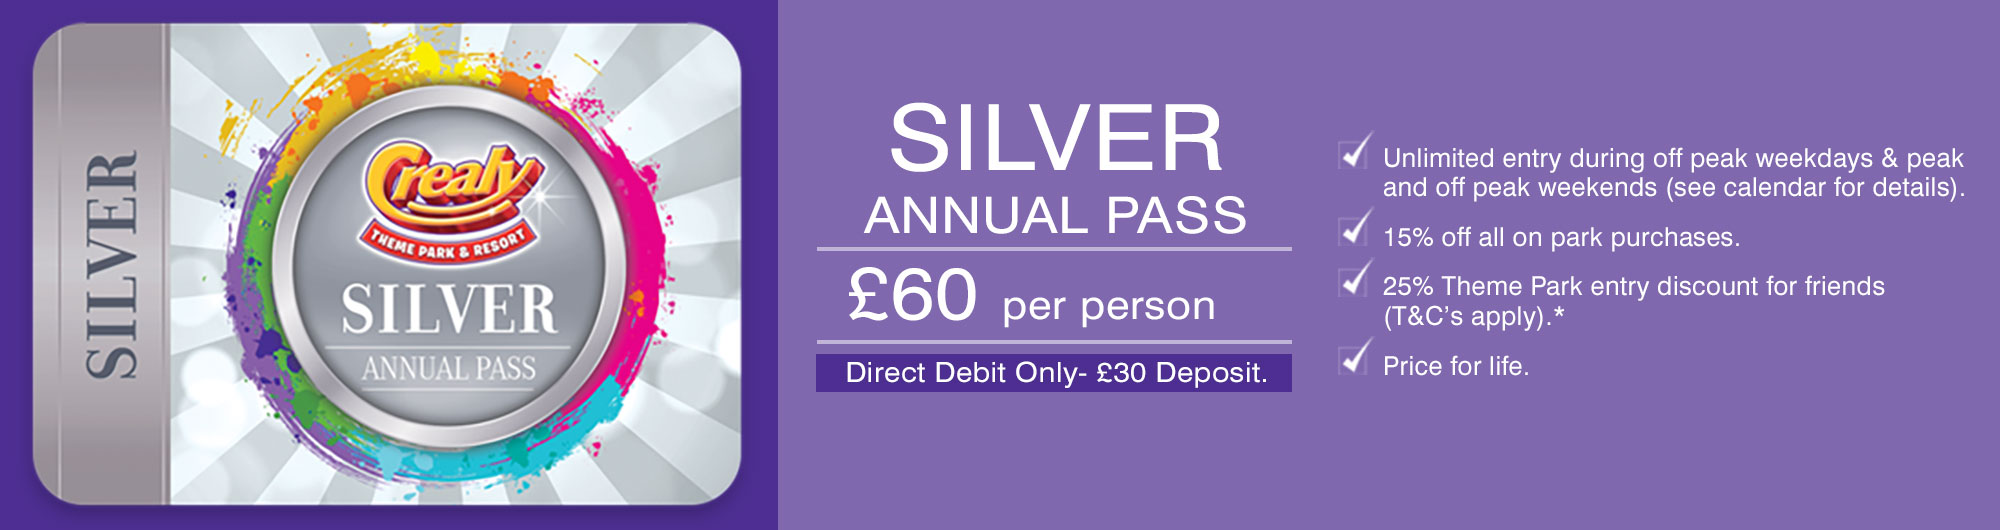 Silver Passes